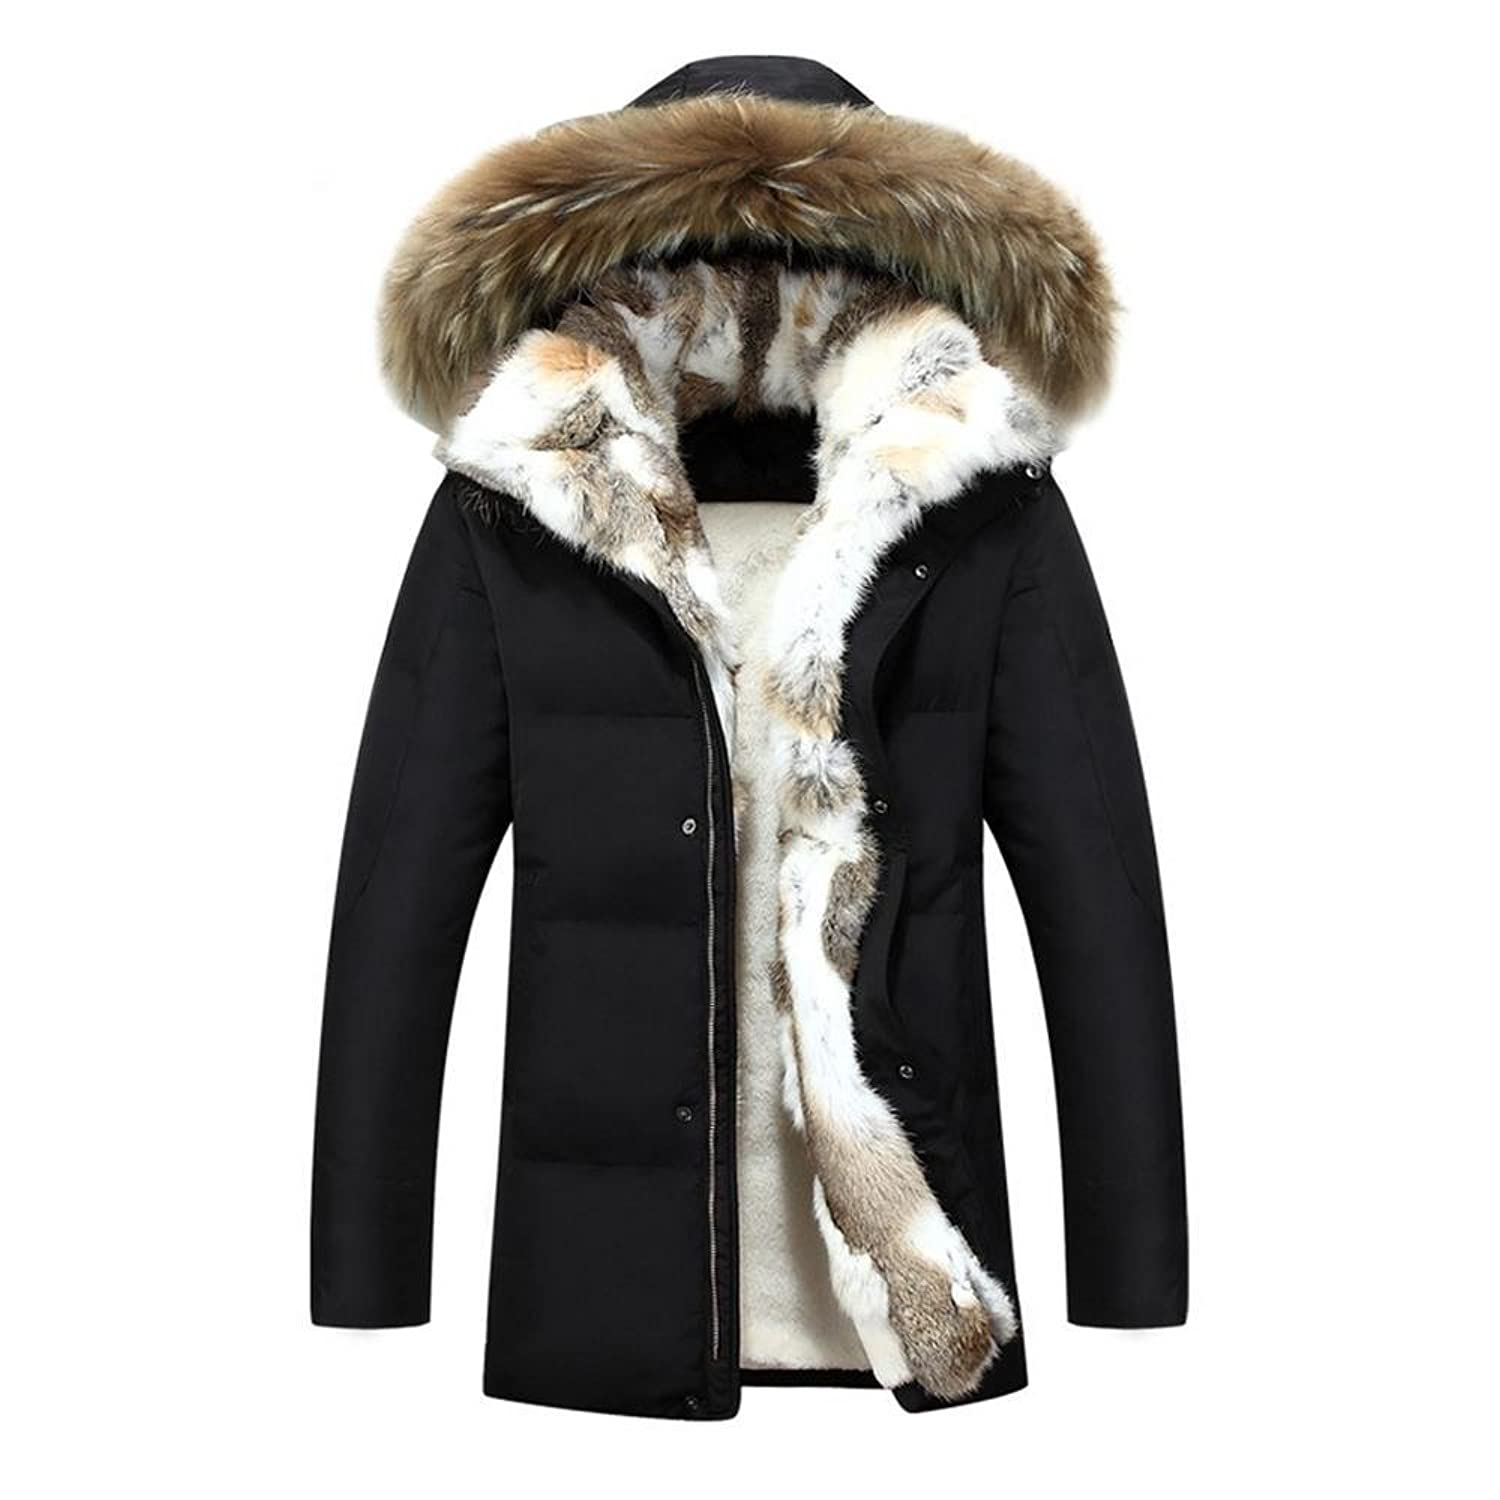 Mens down parka with fur hood